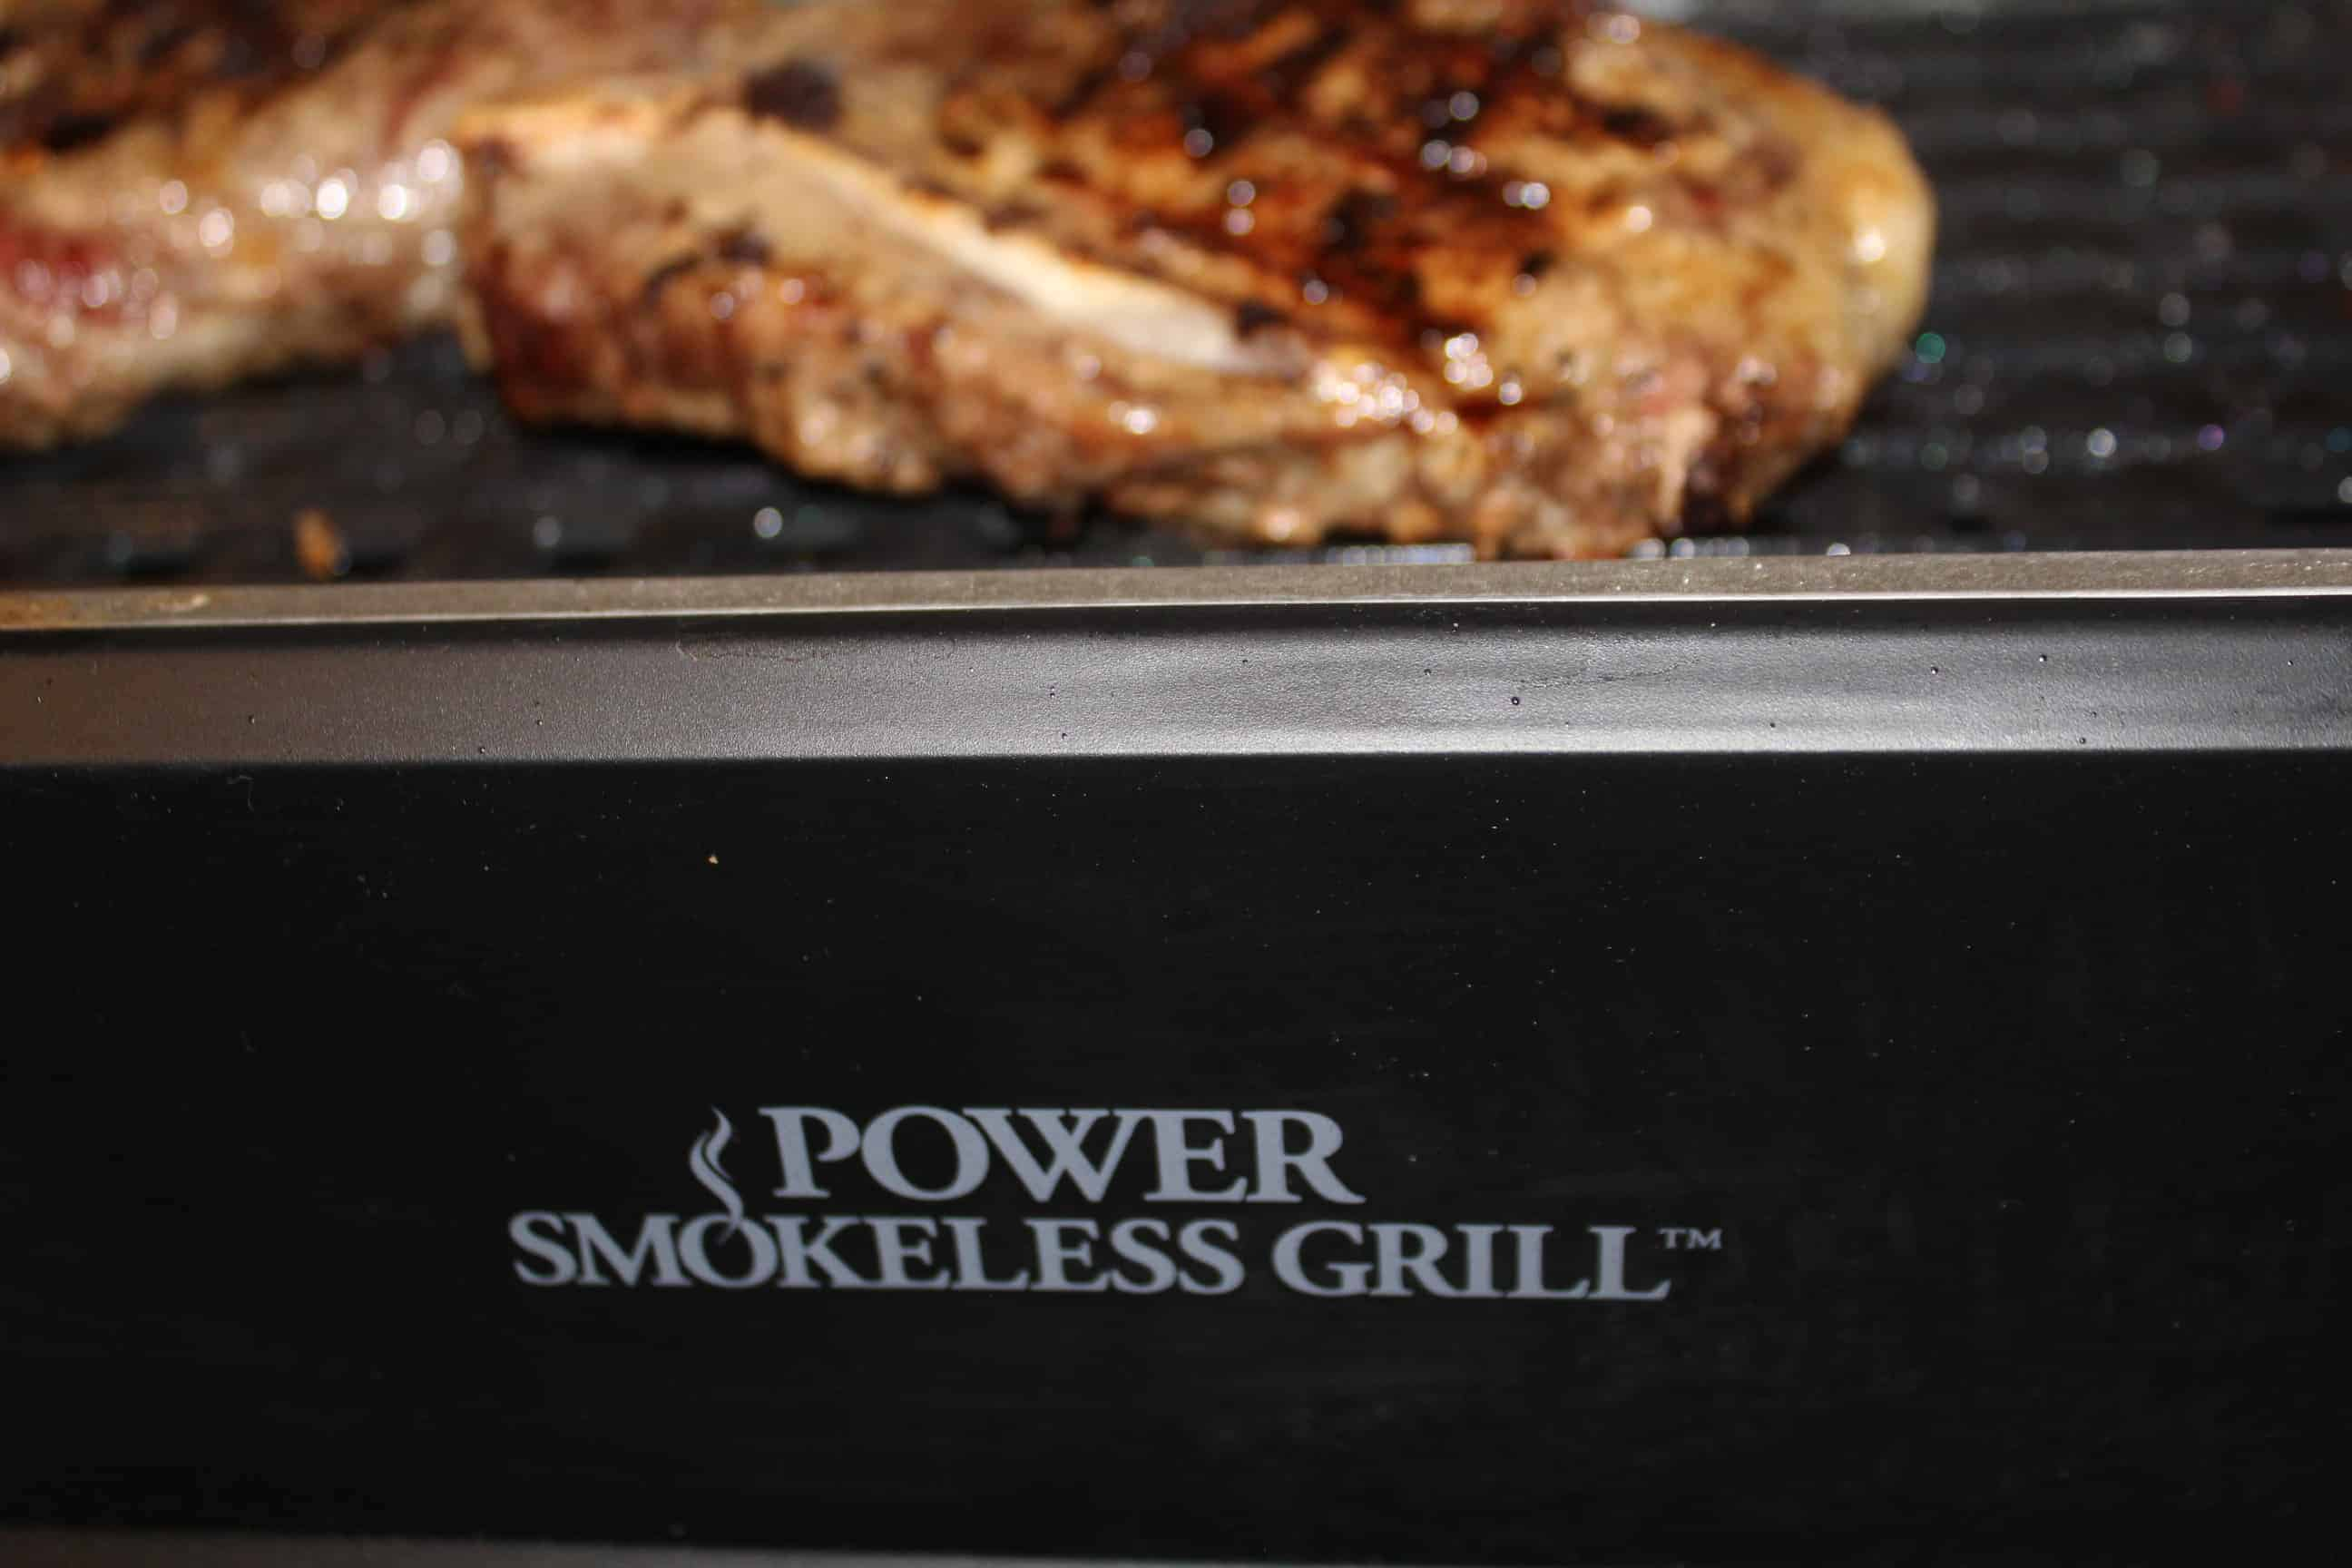 Best Indoor Grill is the Power Smokeless Grill